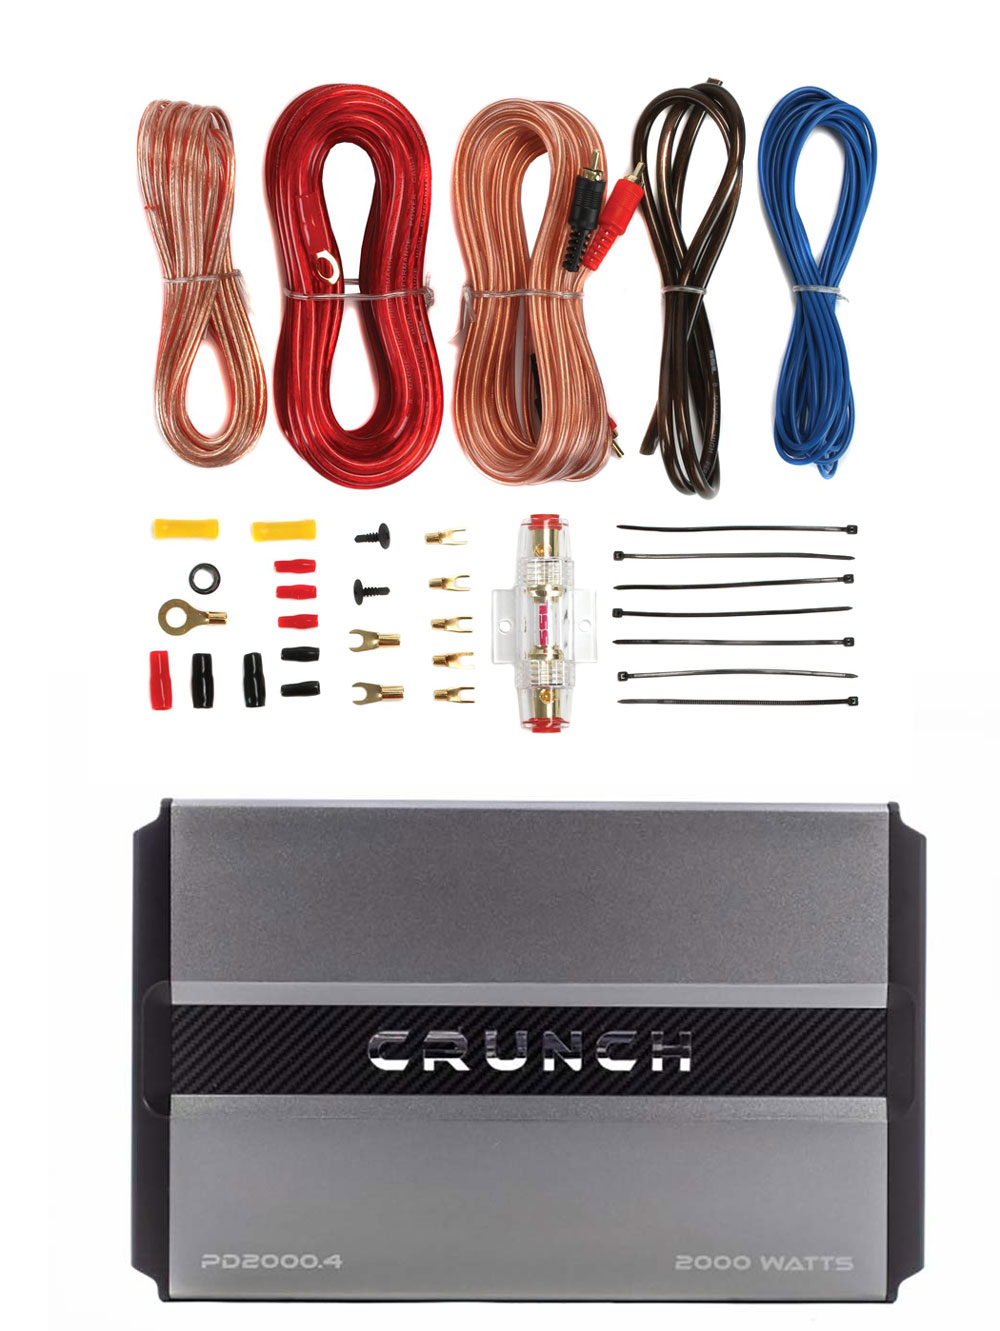 4 Channel Car Amplifier Wiring Kit Solutions Dna Gauge Ch 1200w Ak44 Crunch Power Drive Max Soundstorm 8 Amp